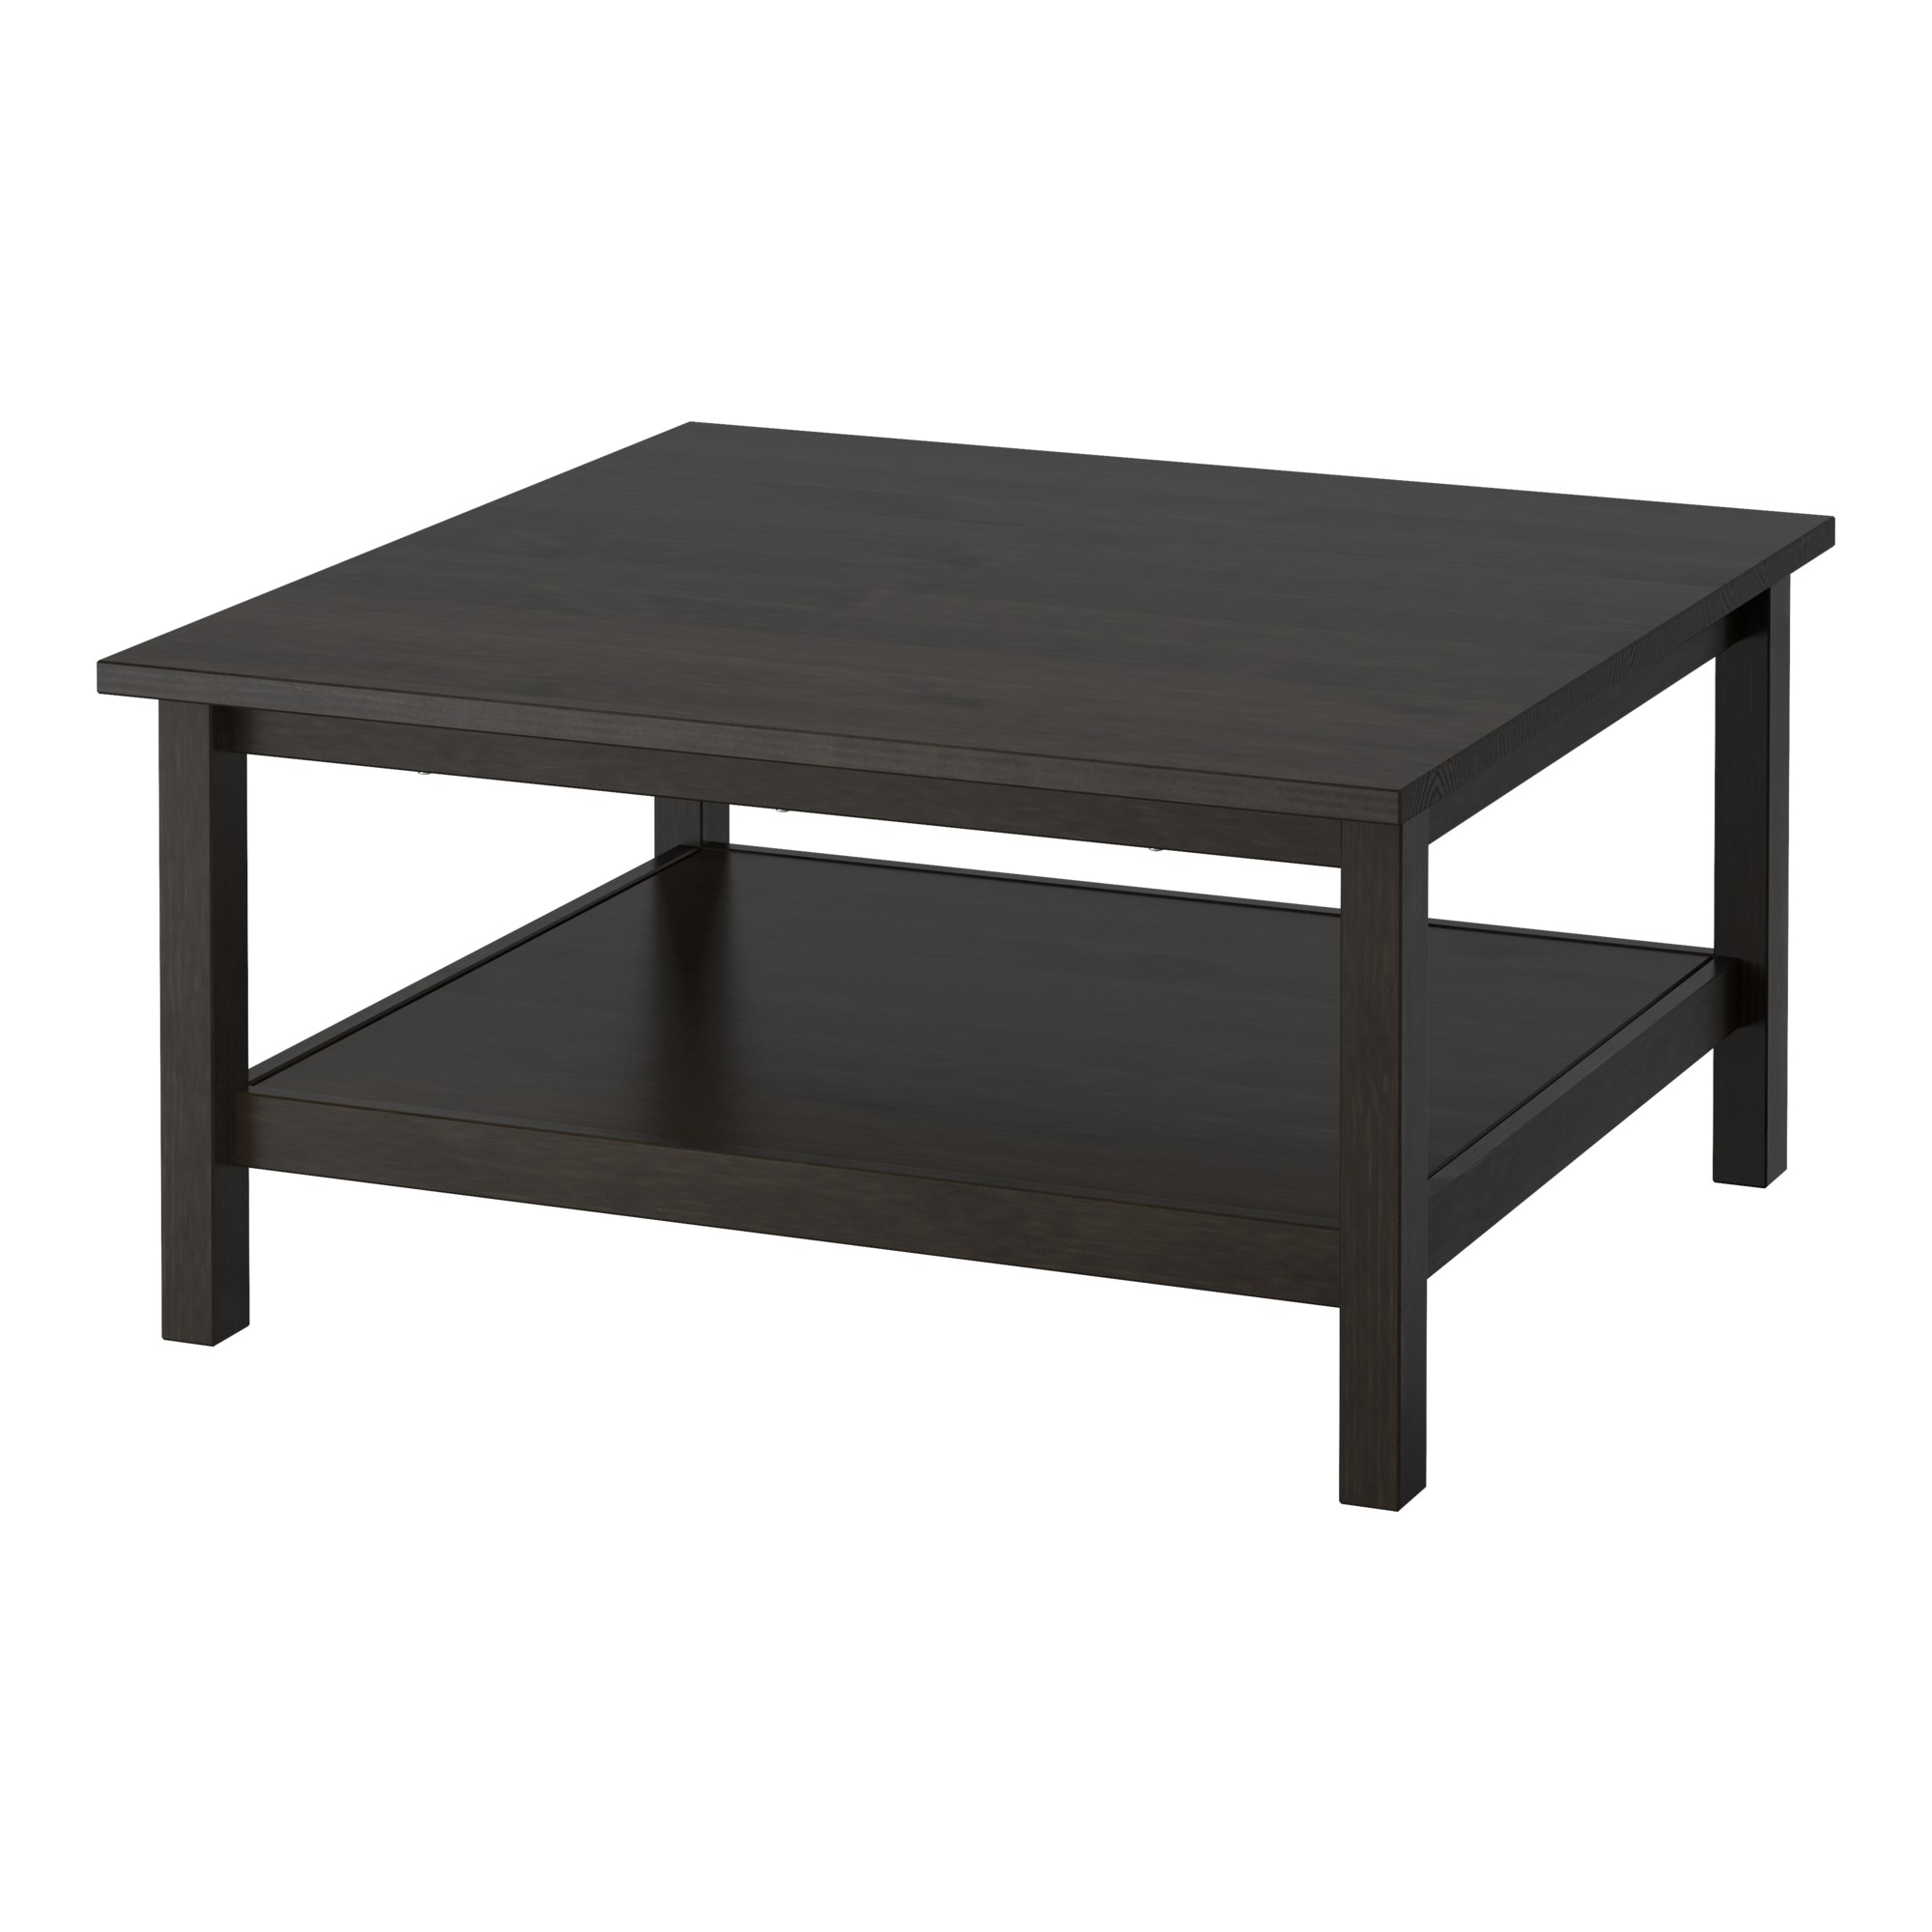 Coffee tables glass wooden coffee tables ikea hemnes coffee table black brown length 35 38 width geotapseo Choice Image